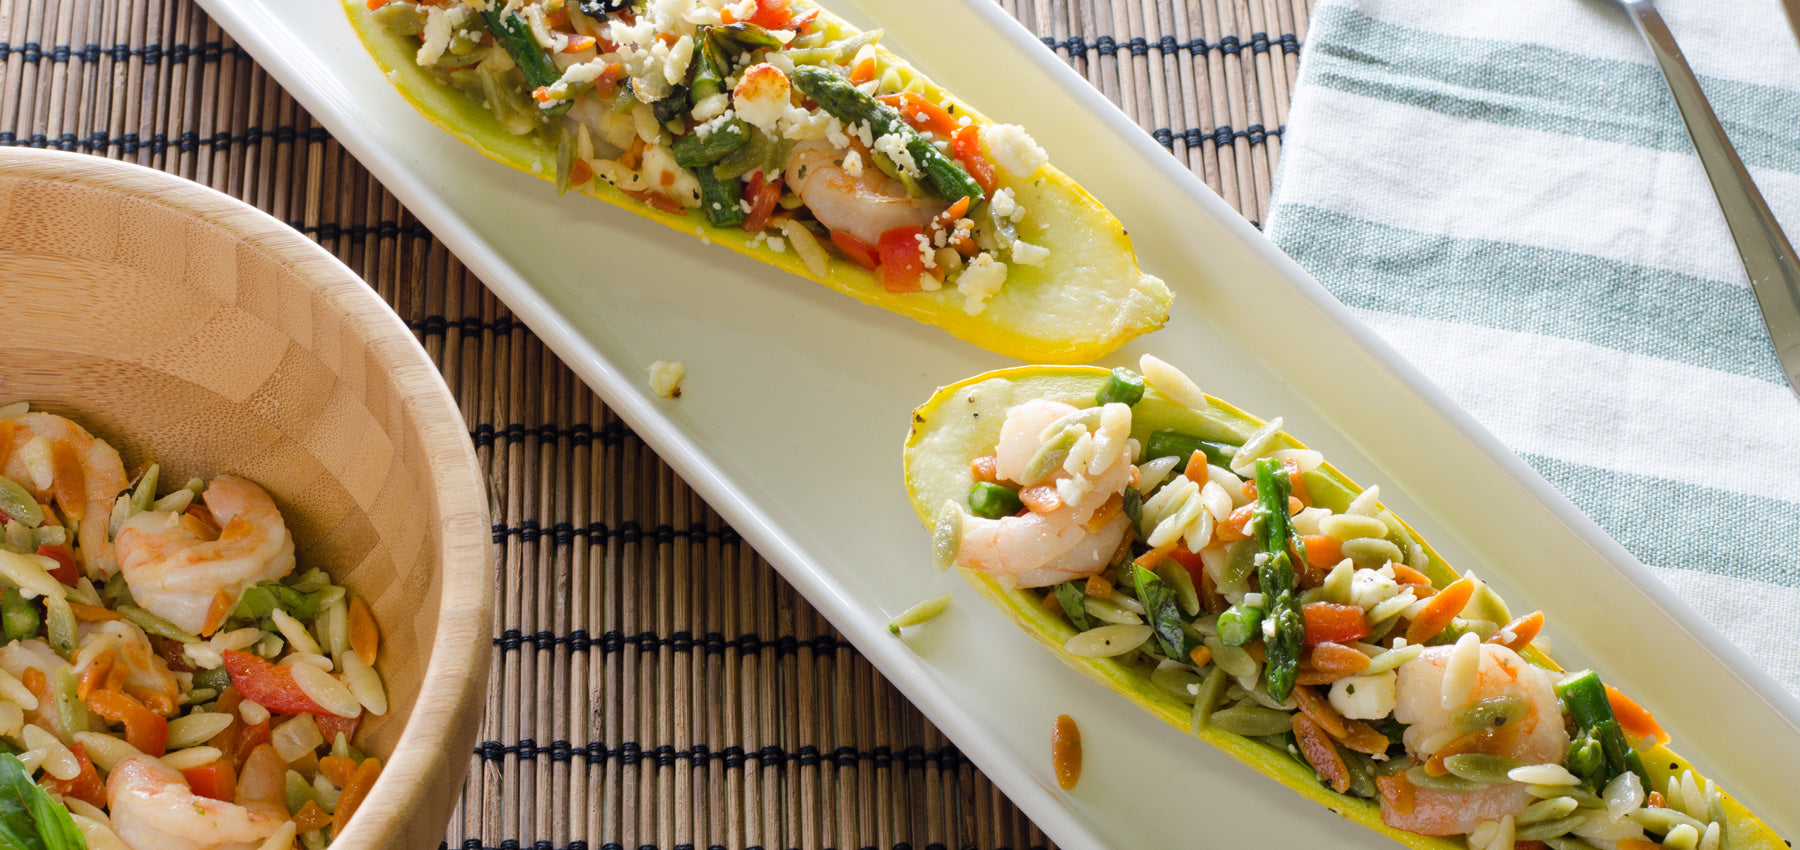 Summer Squash Stuffed with Rainbow Orzo & Shrimp Salad